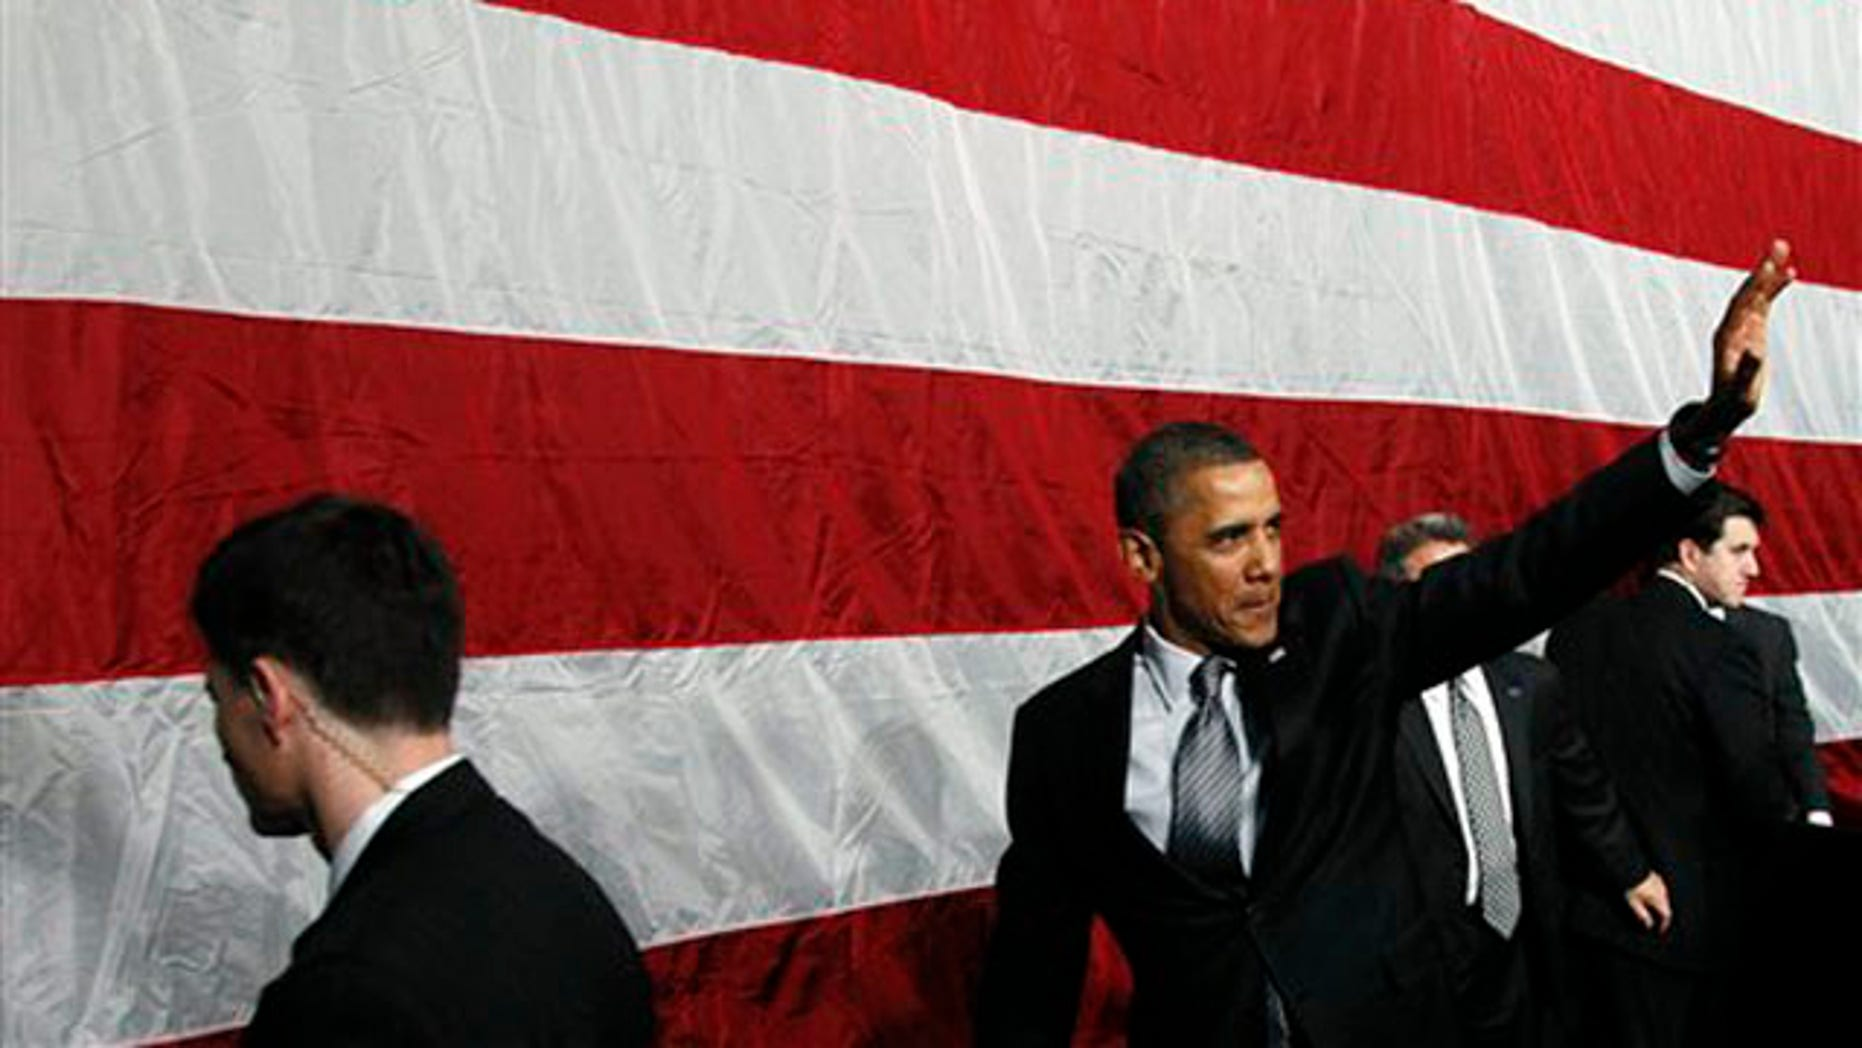 Jan. 11, 2012: President Obama waves after he spoke at a campaign event at the University of Illinois in Chicago.